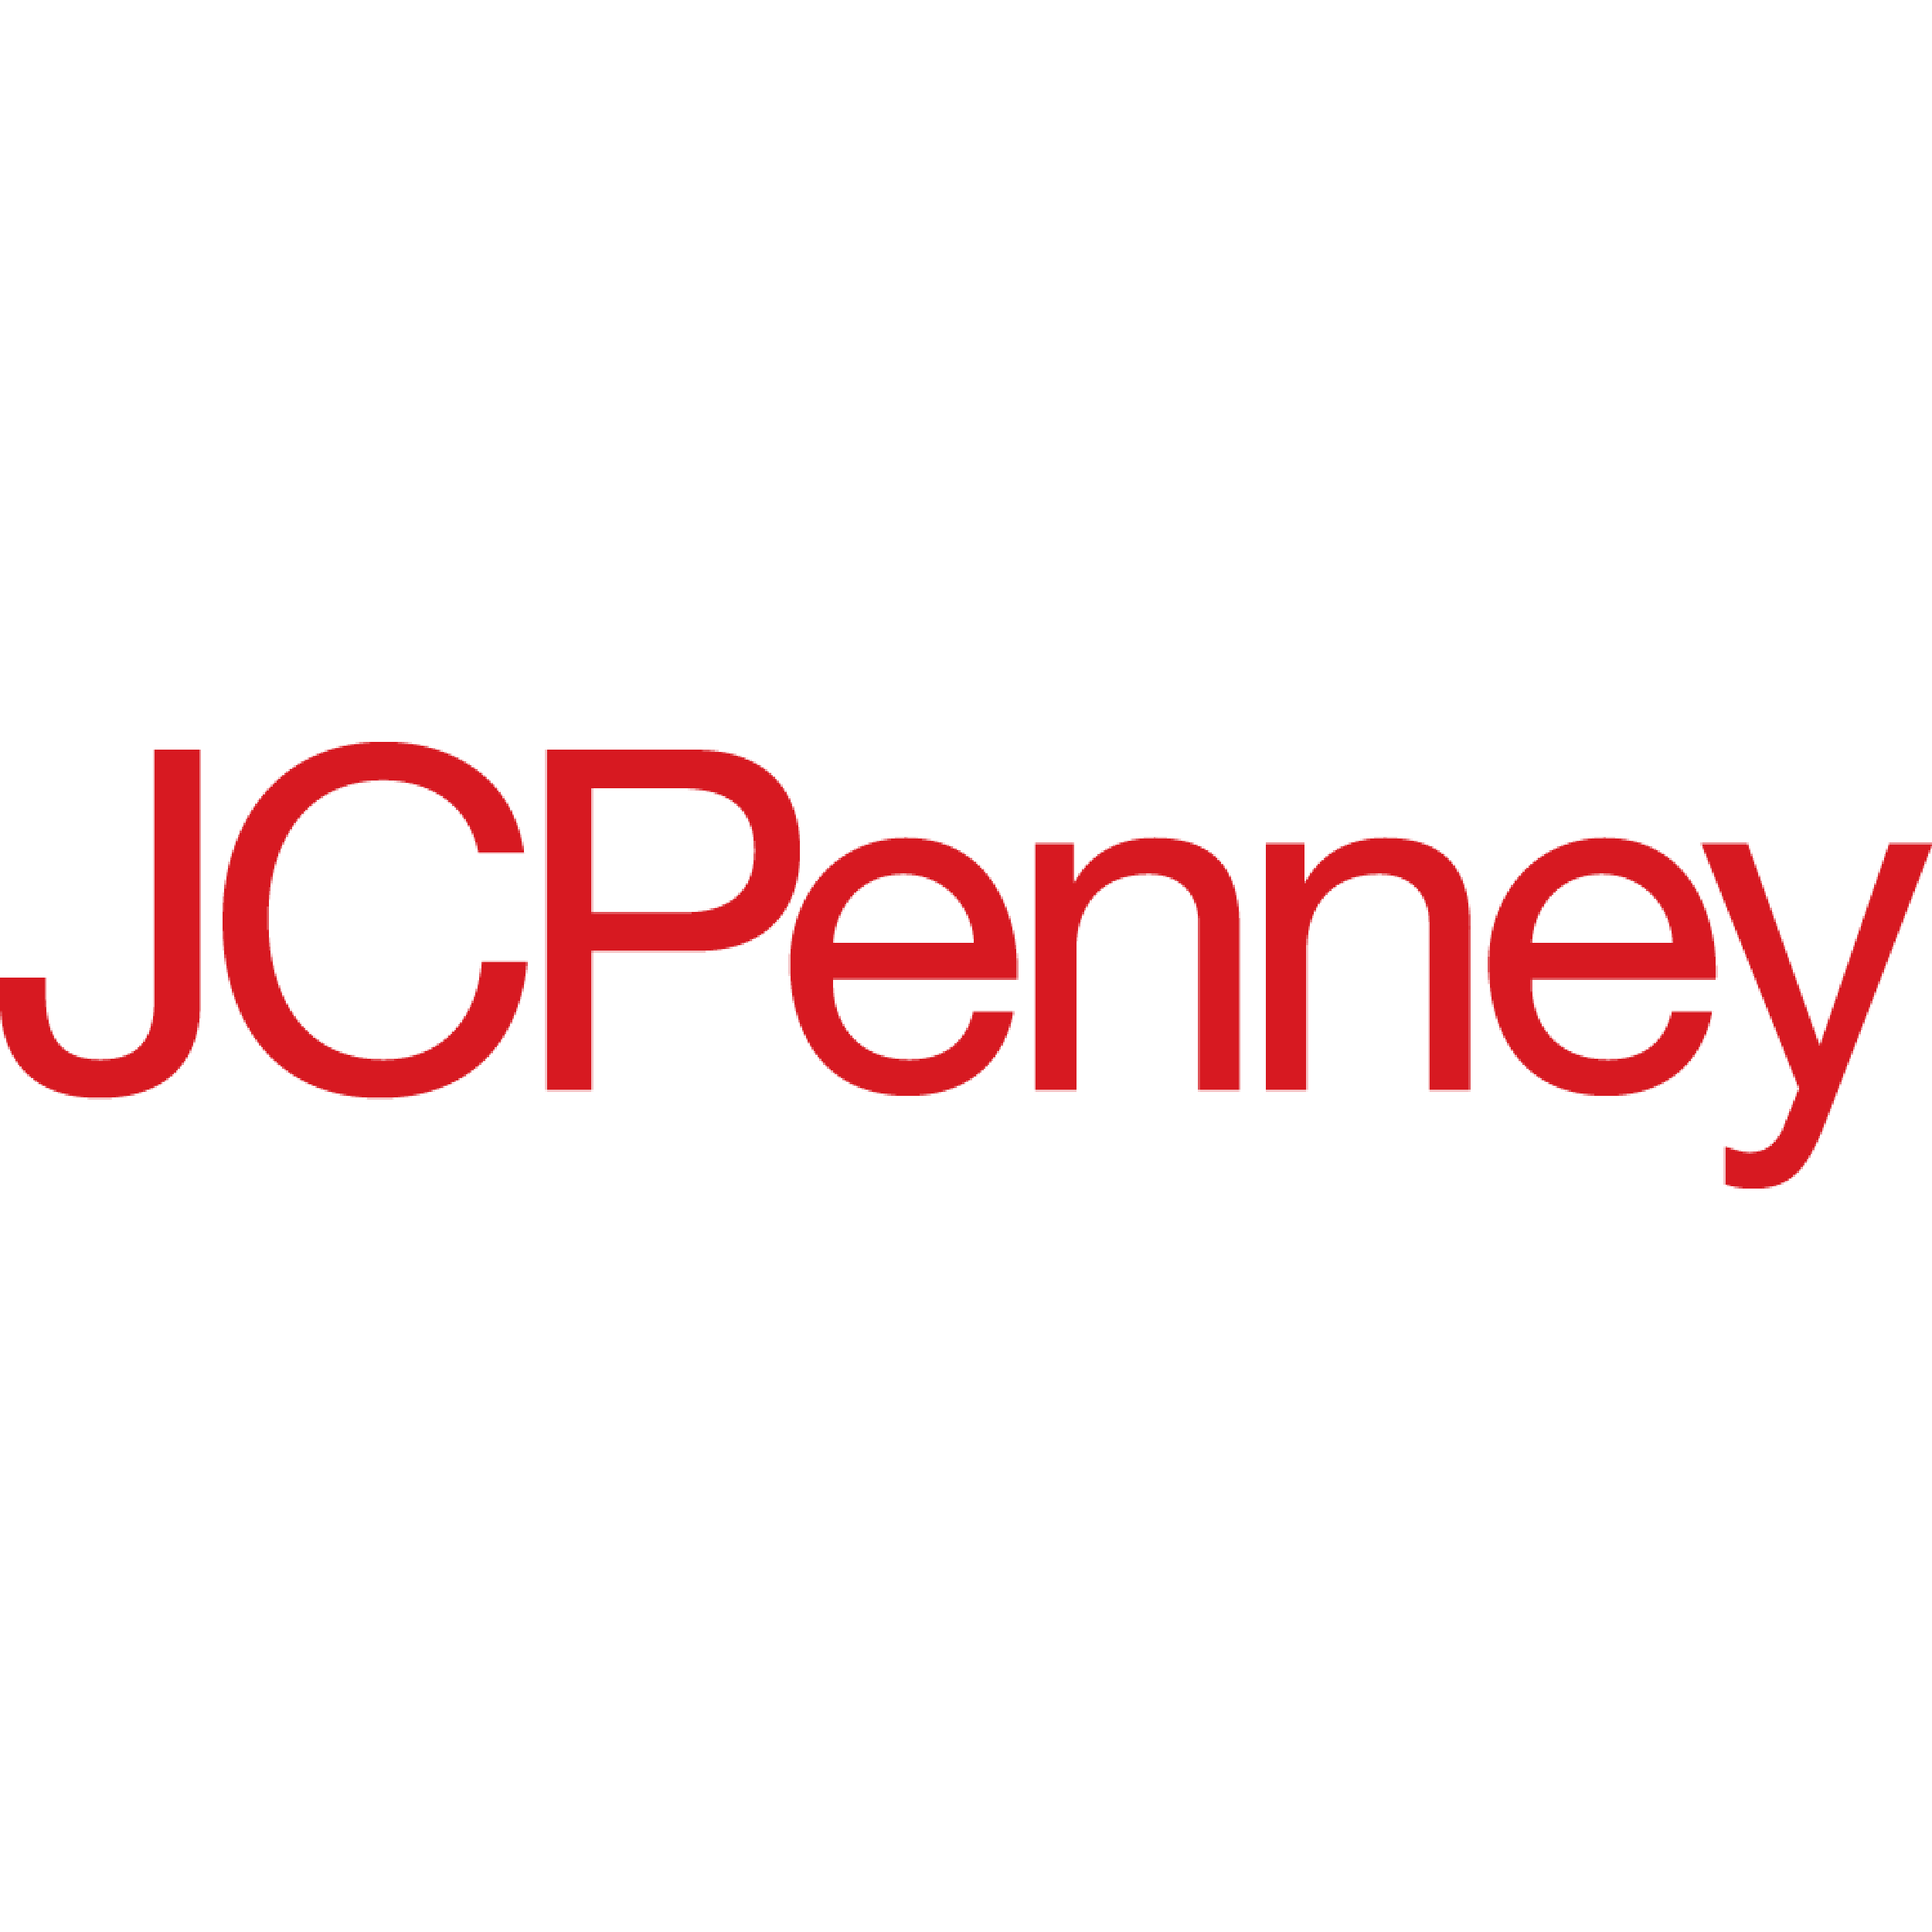 JCPenney - Garden City, KS - Department Stores